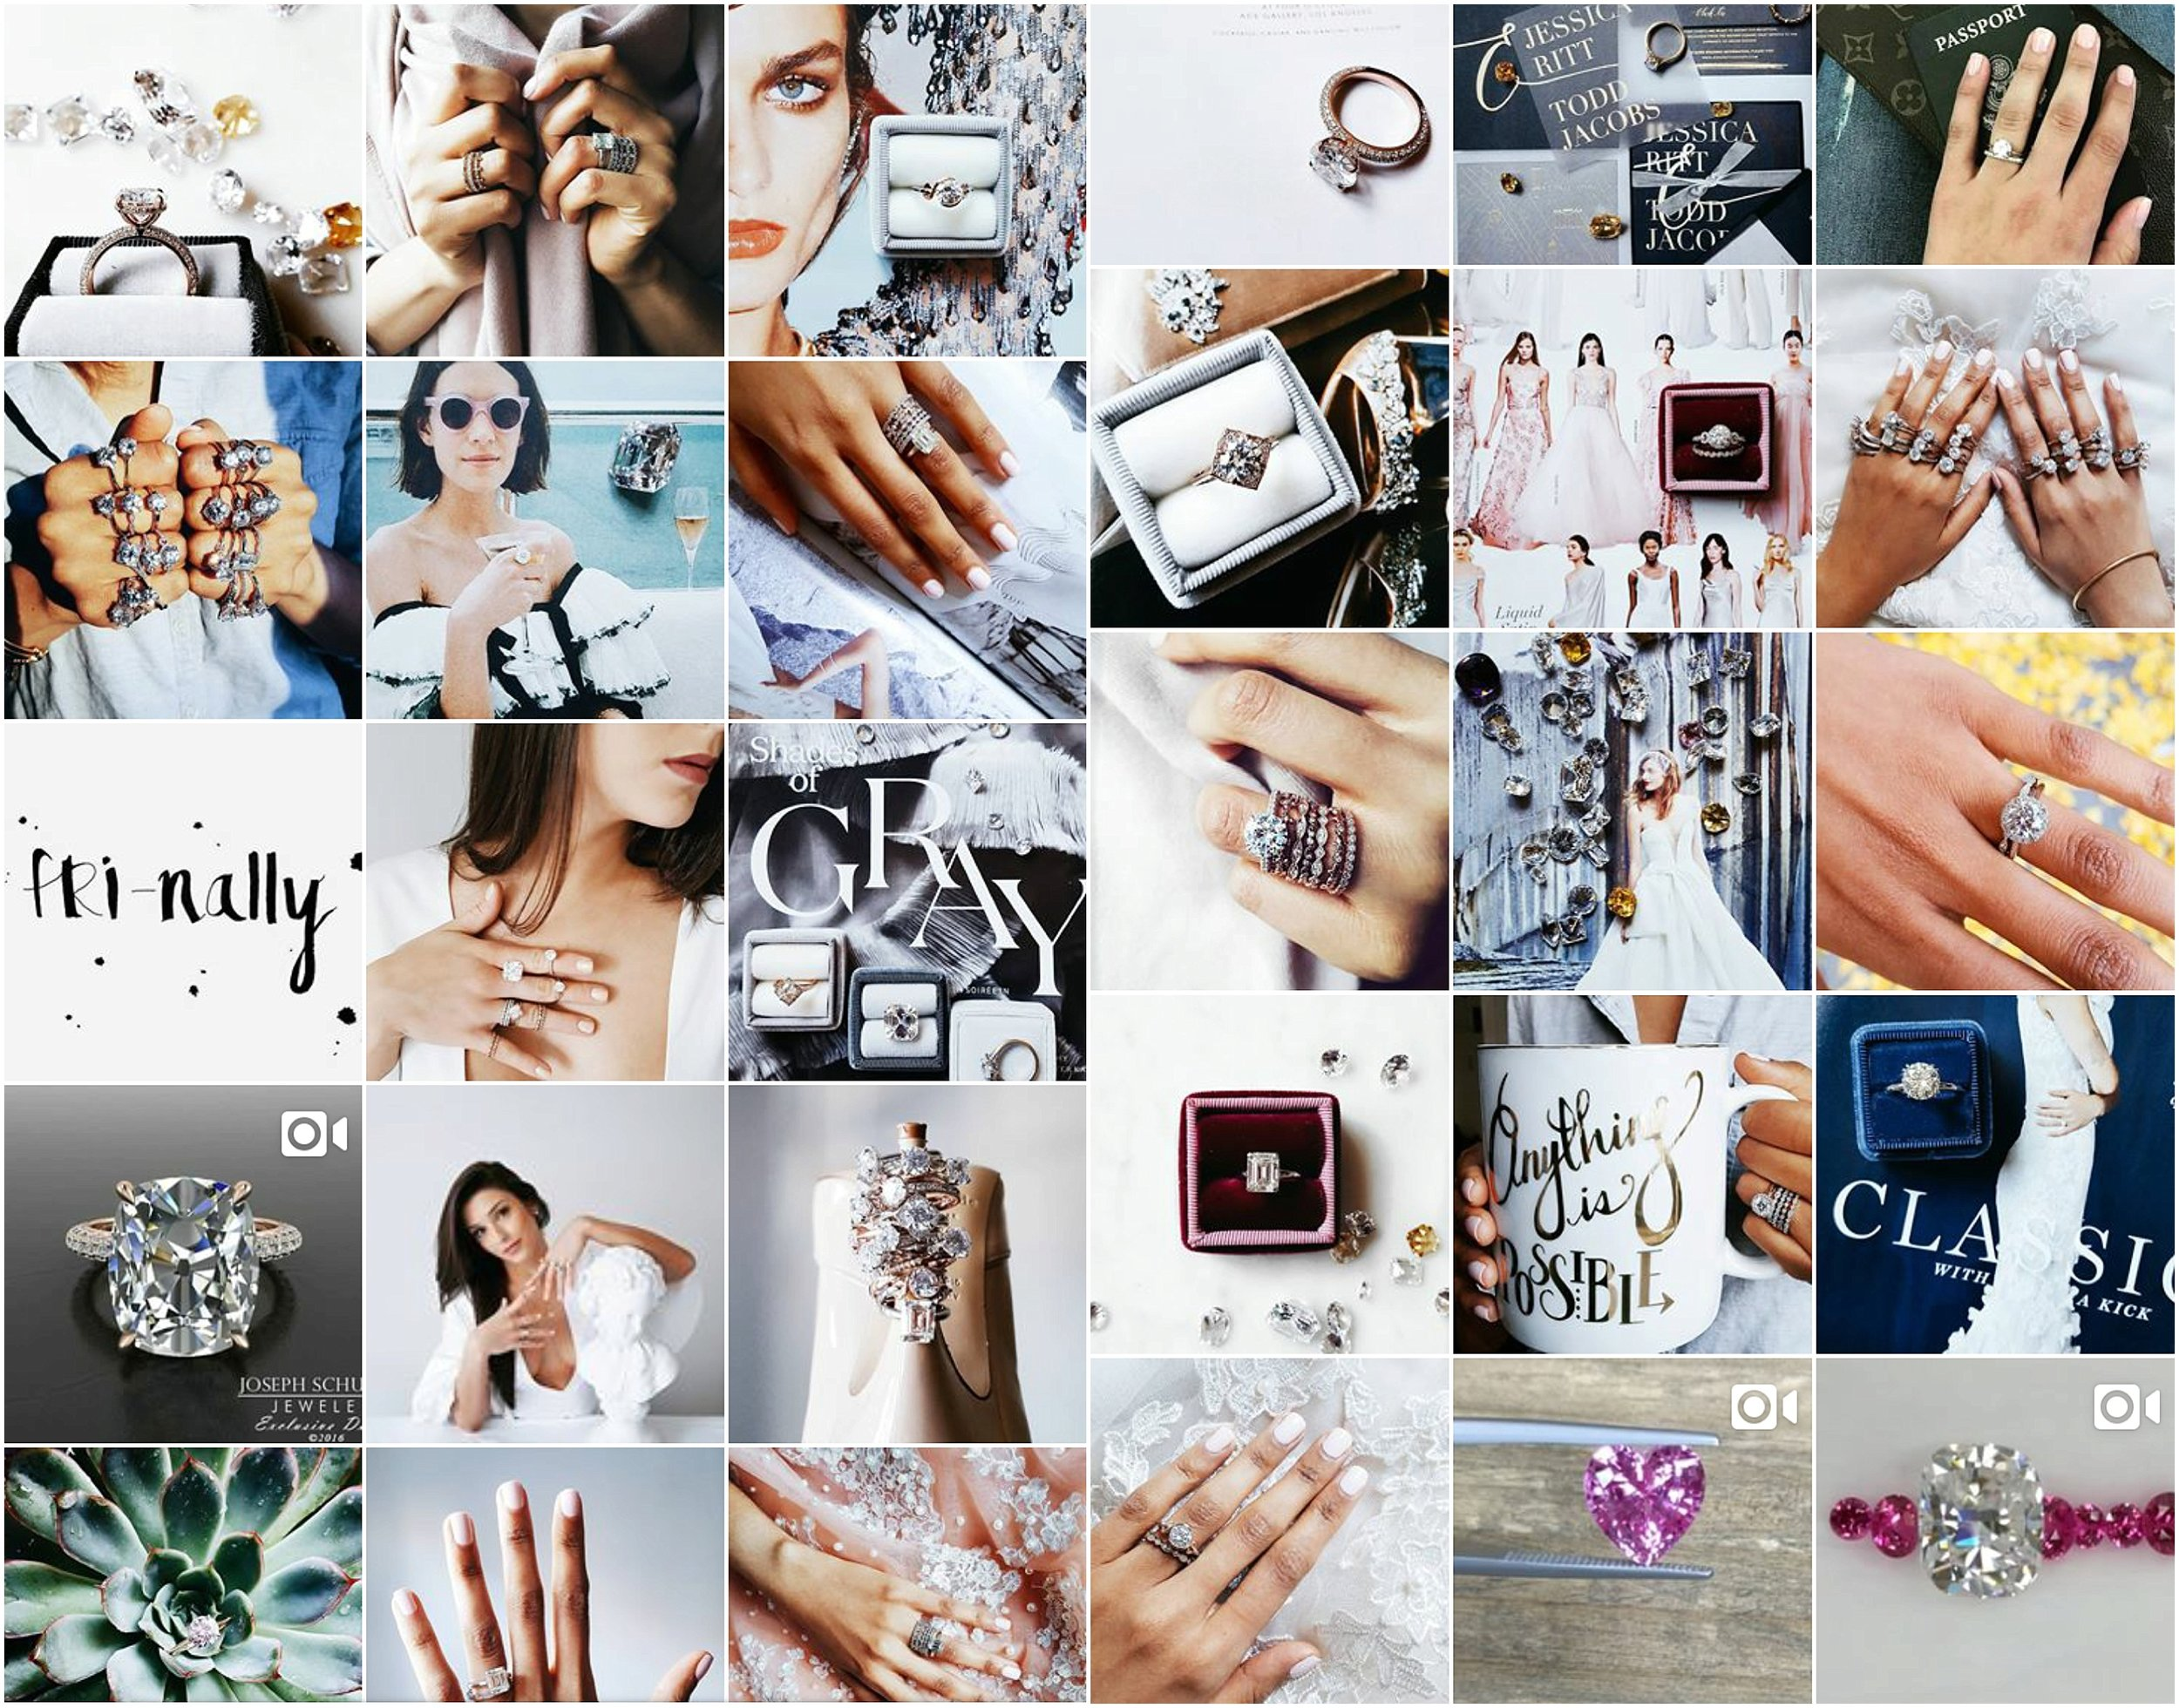 AFTER. I took the images, and then did the overhaul to their Instagram including posting, finding marketable hashtags, following accounts that would up their presence, and training them on how to maintain a beautiful feed that will help gain followers and new clients.